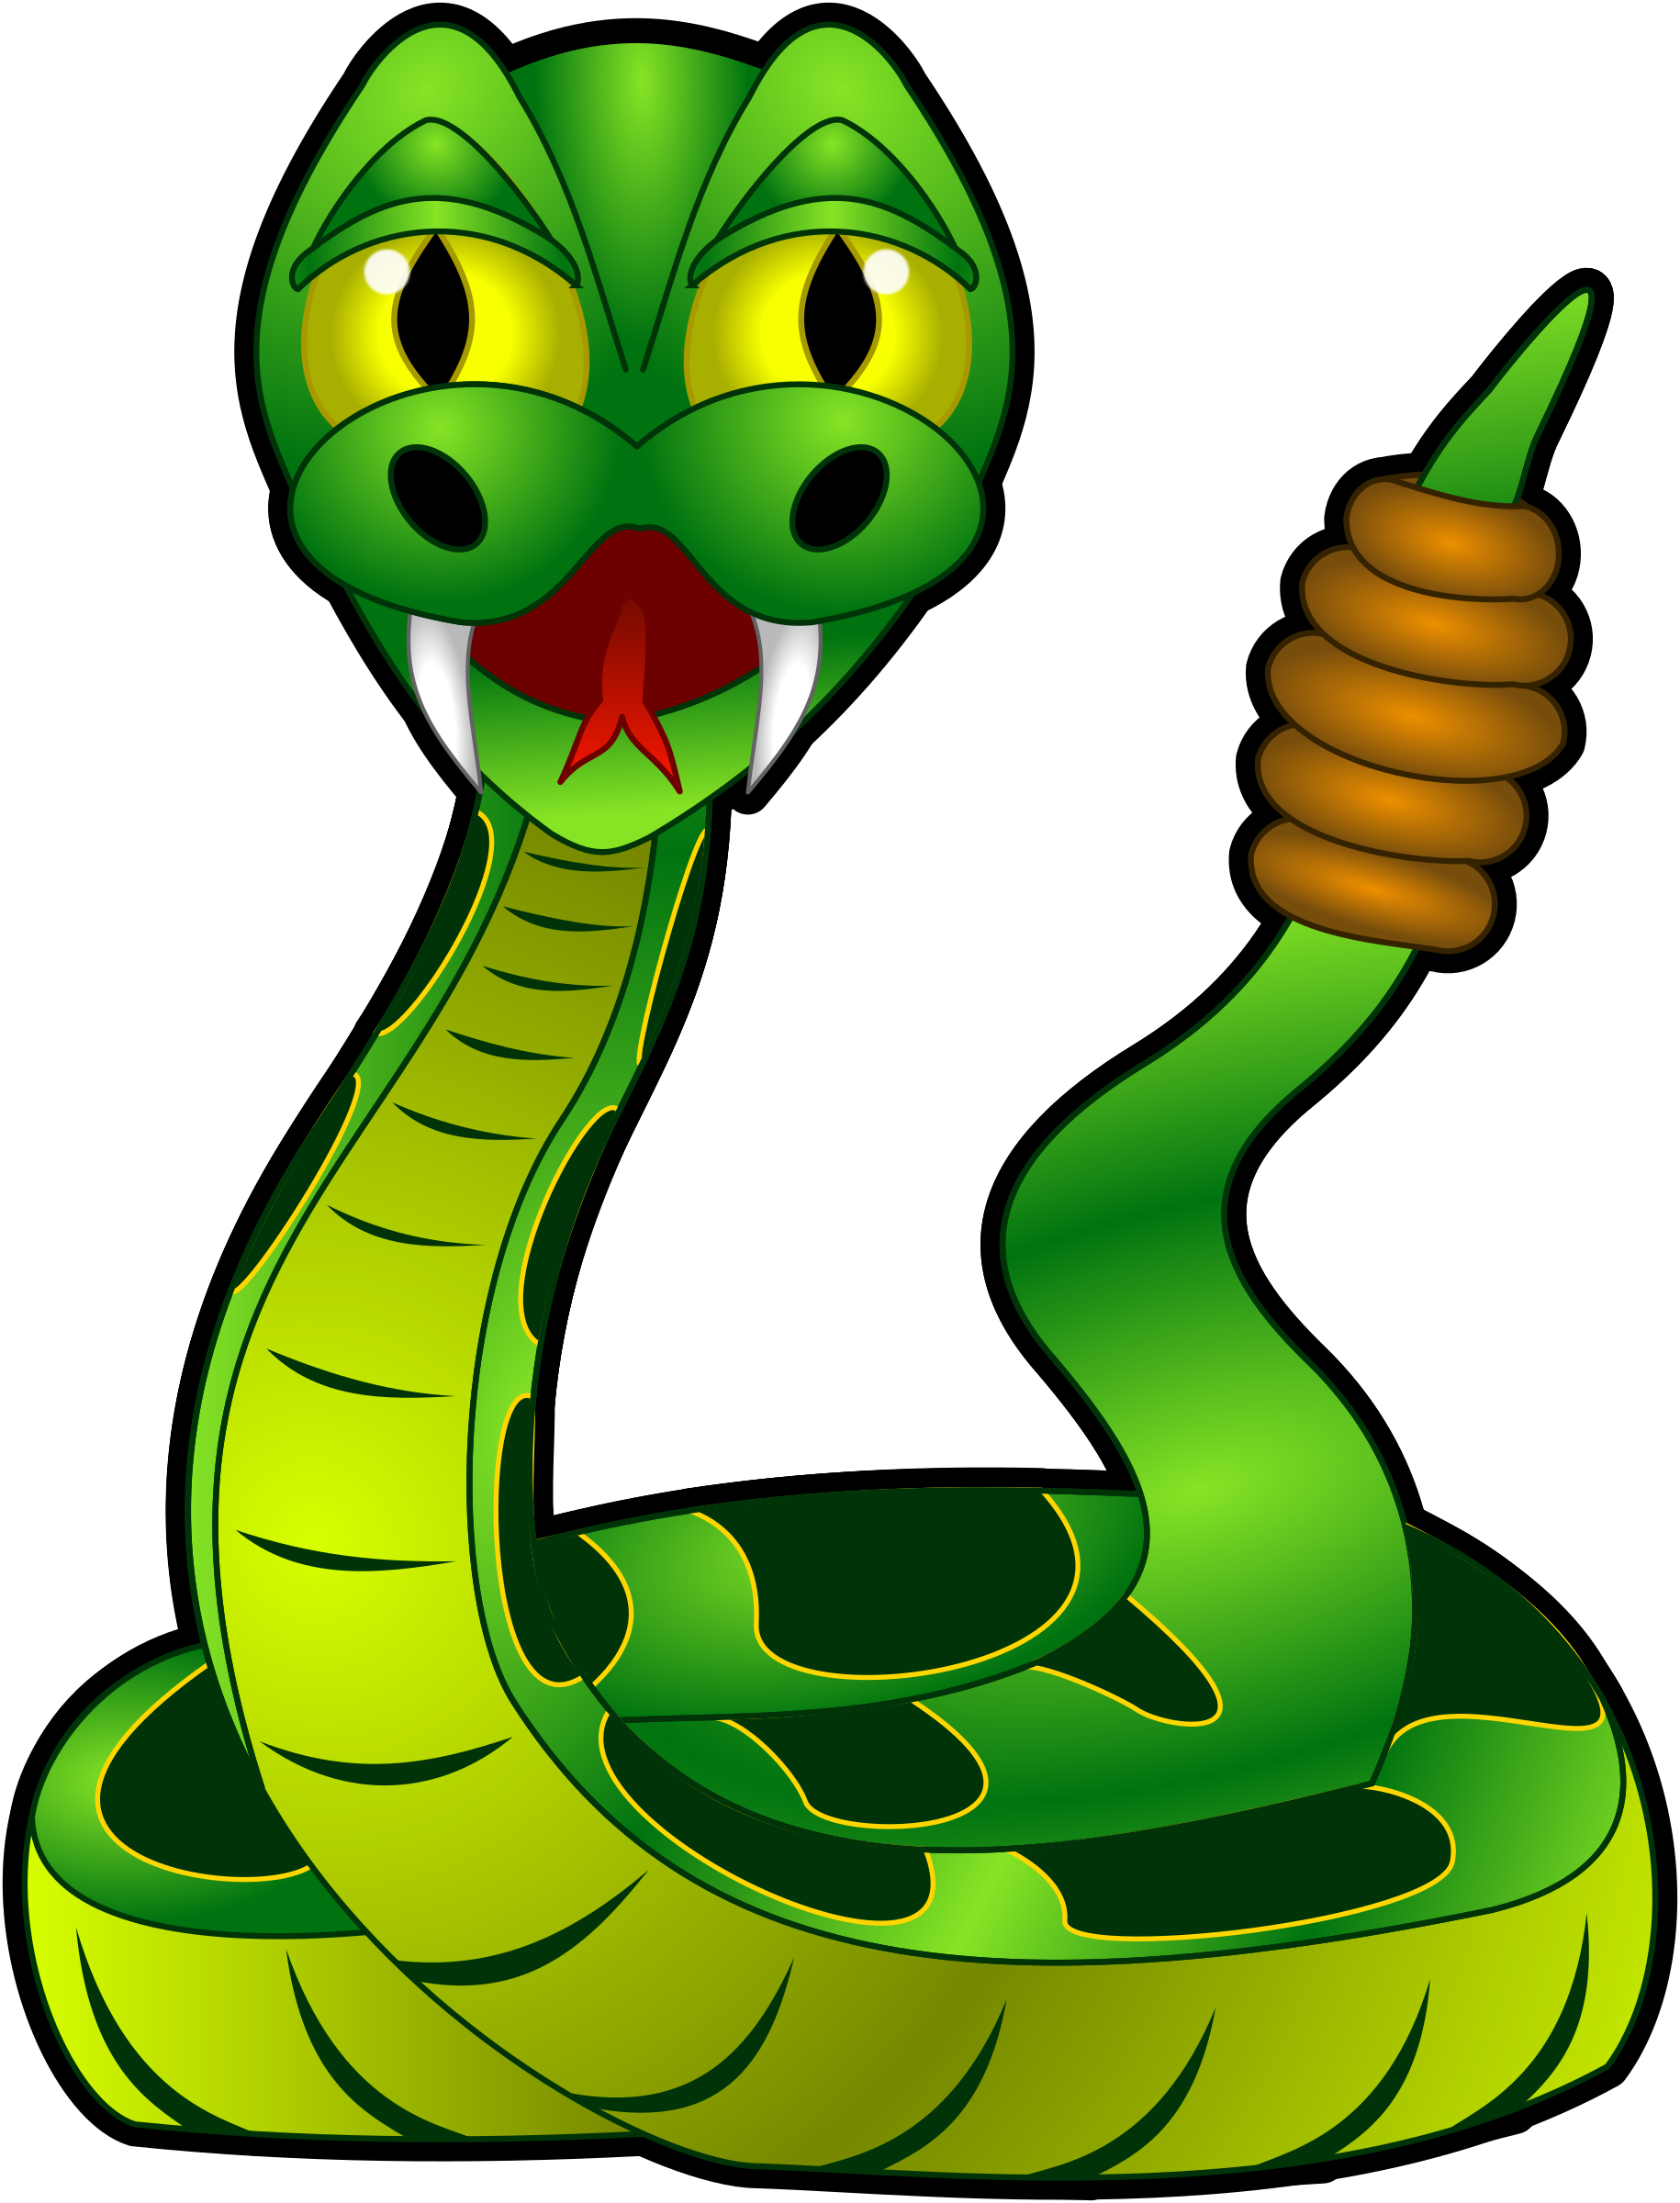 Cartoon Rattlesnake by Sirrob01